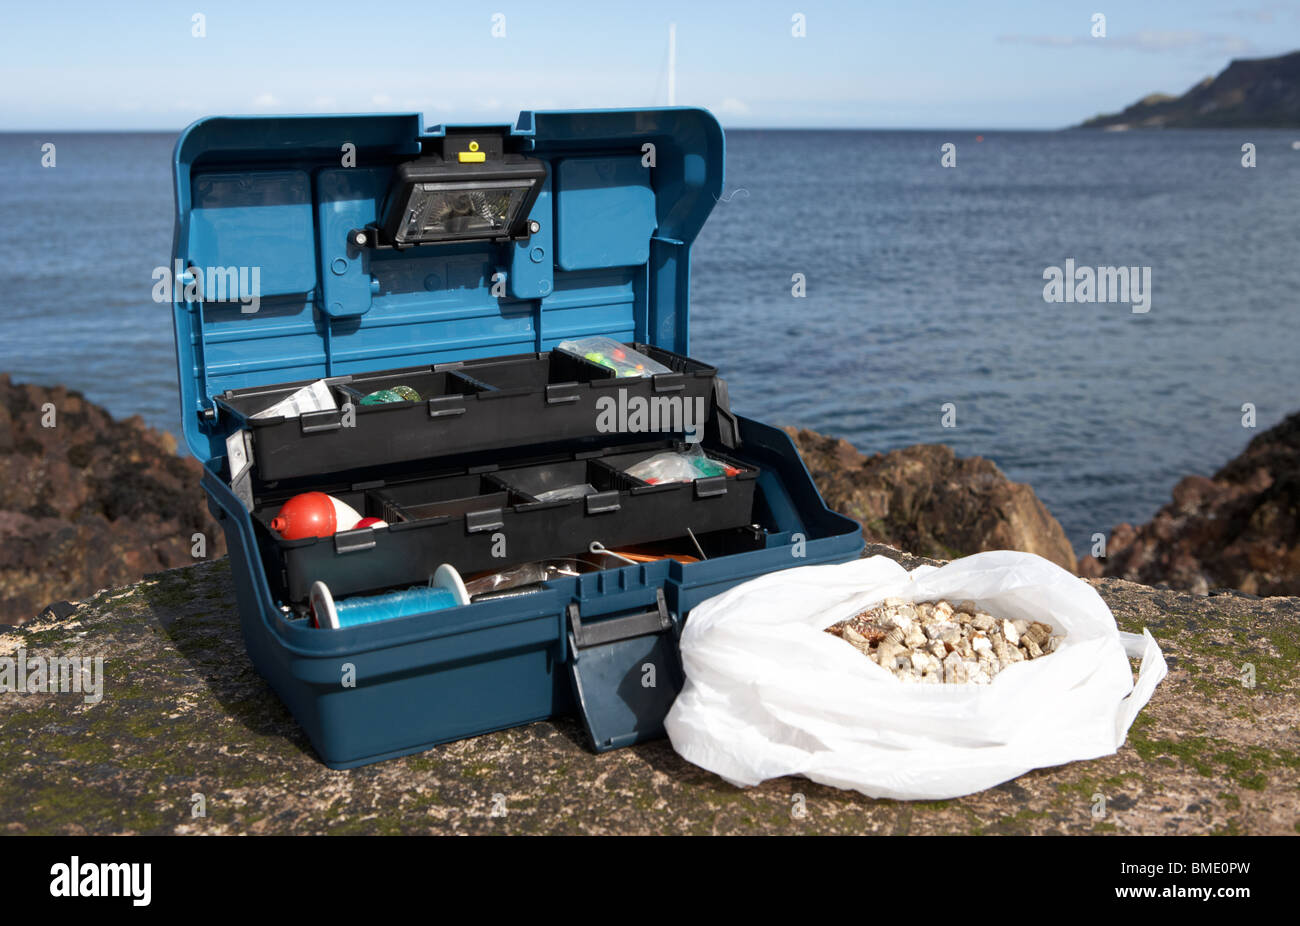 fishing tackle box filled with sea fishing gear and bag of ragworm, Fishing Rod